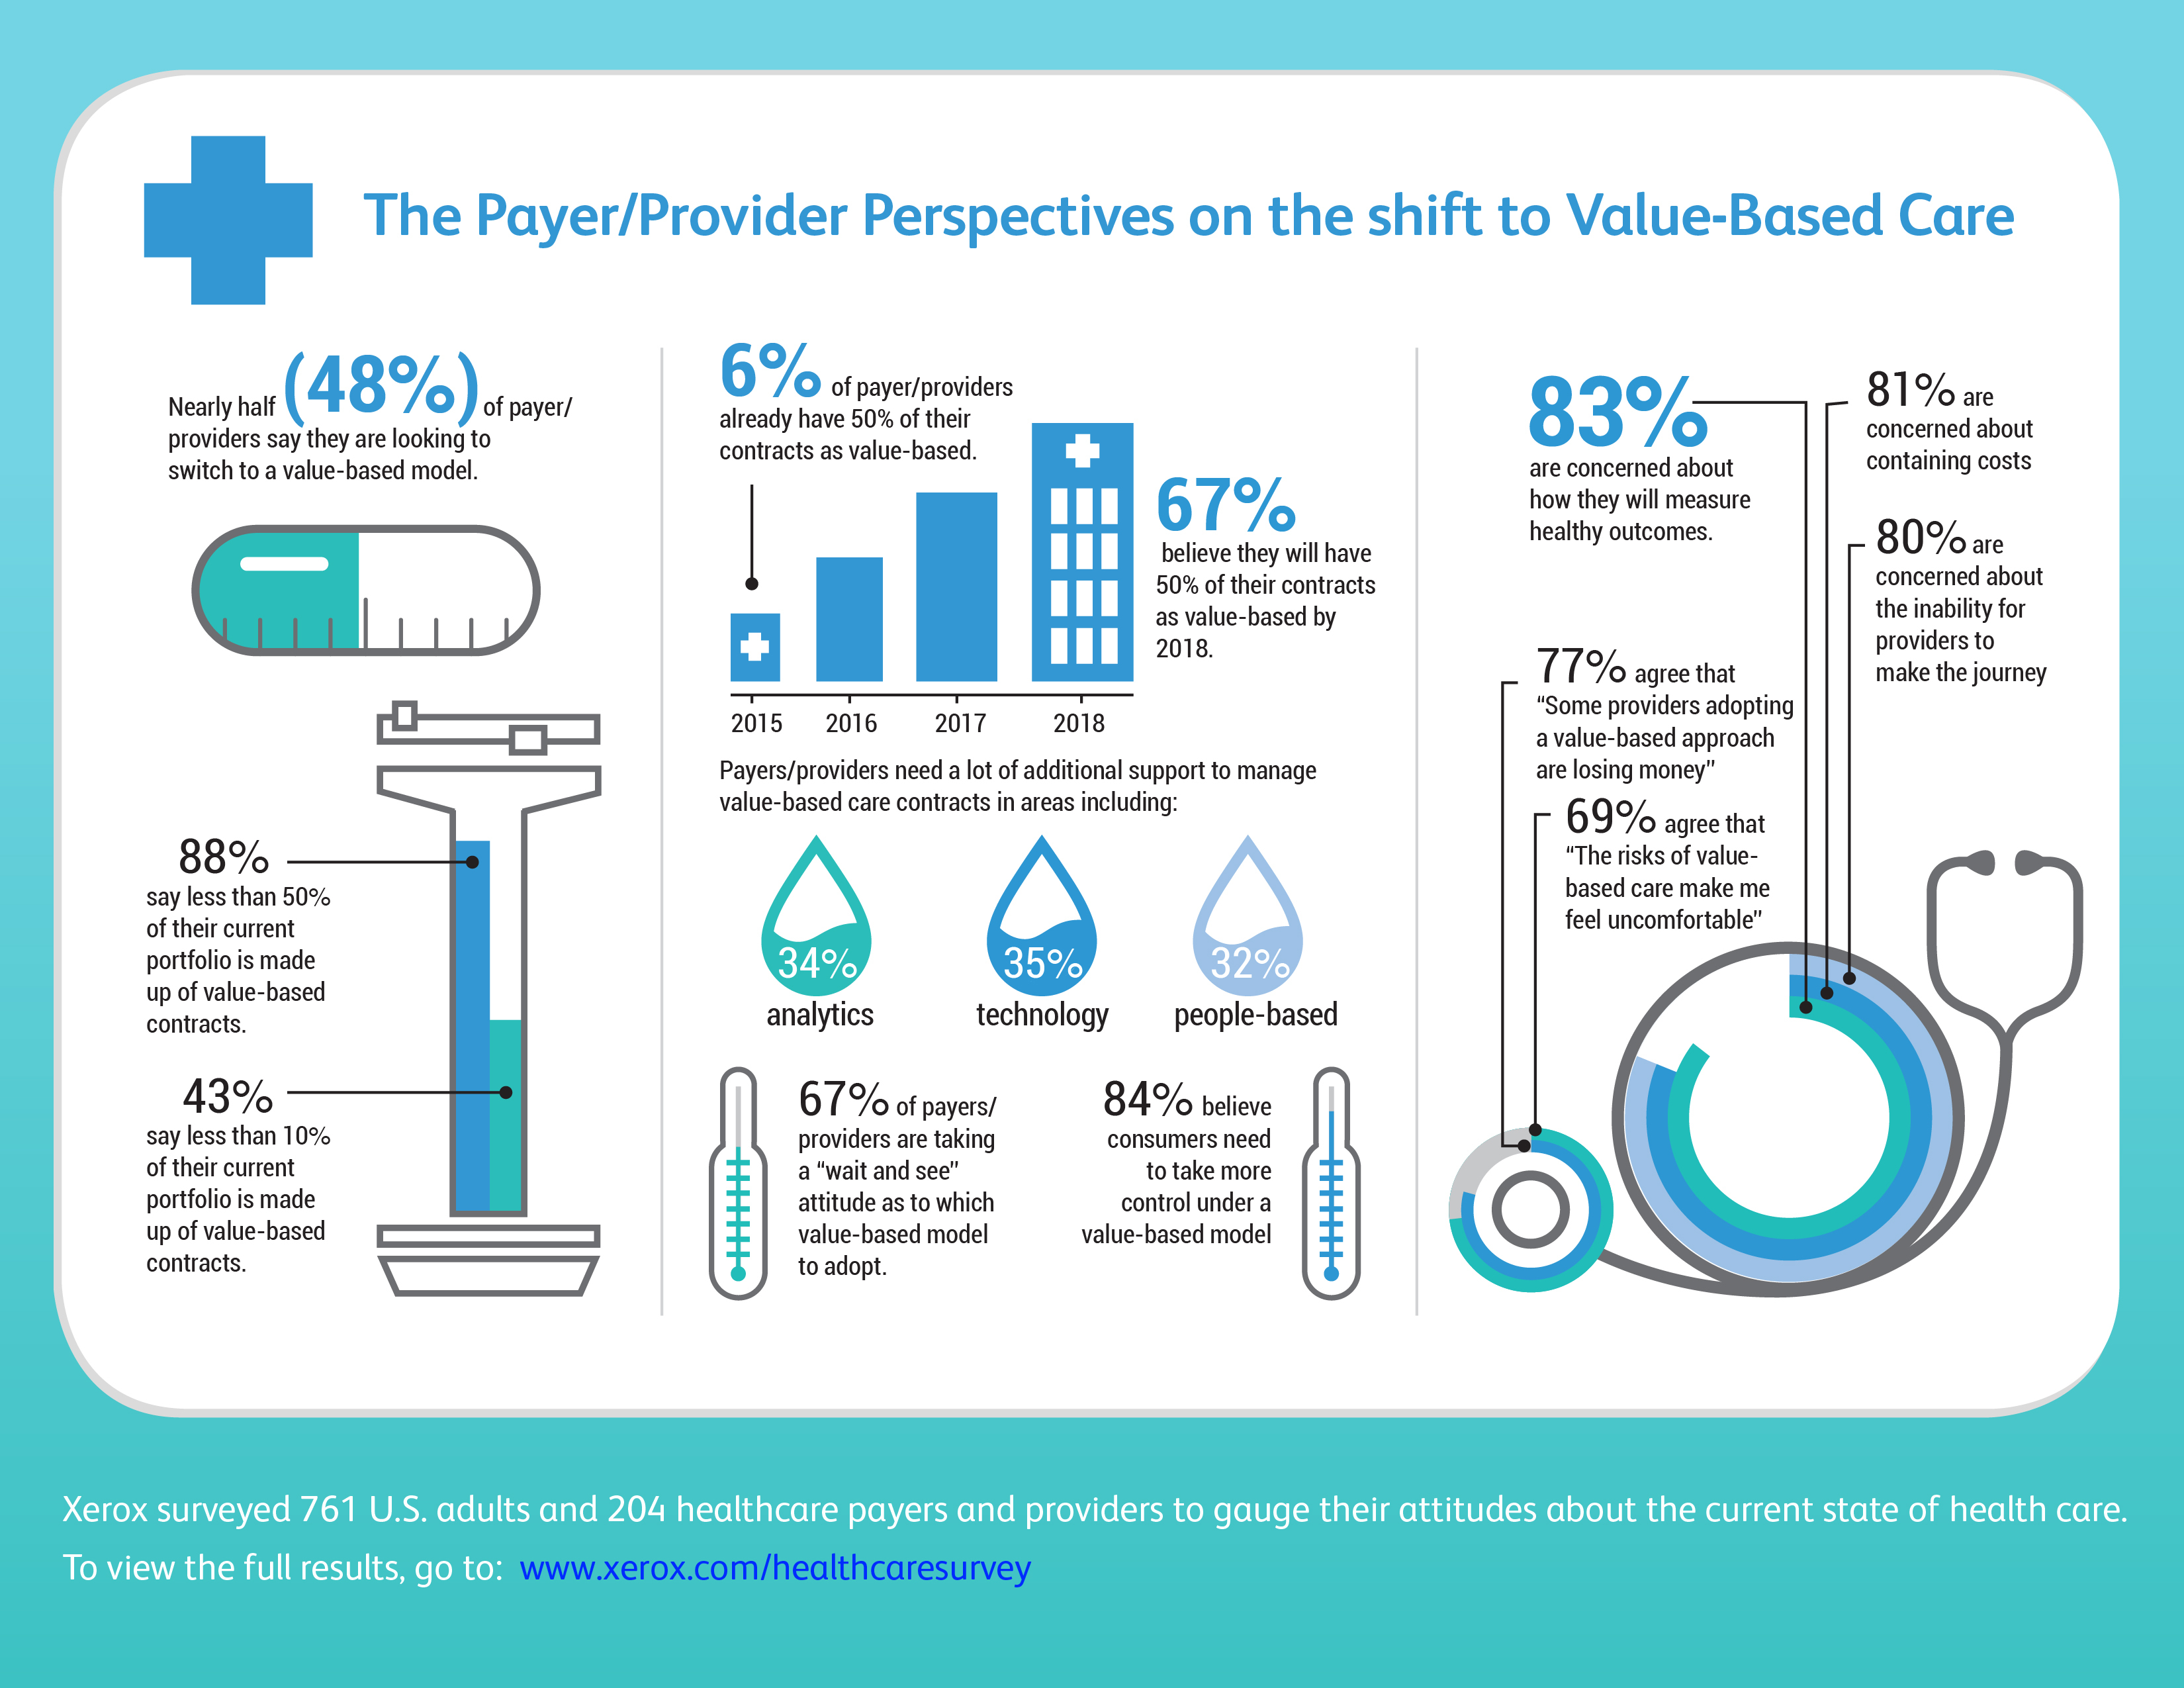 69% of Providers/Payers Are Uncomfortable with Risks of Value-Based Care